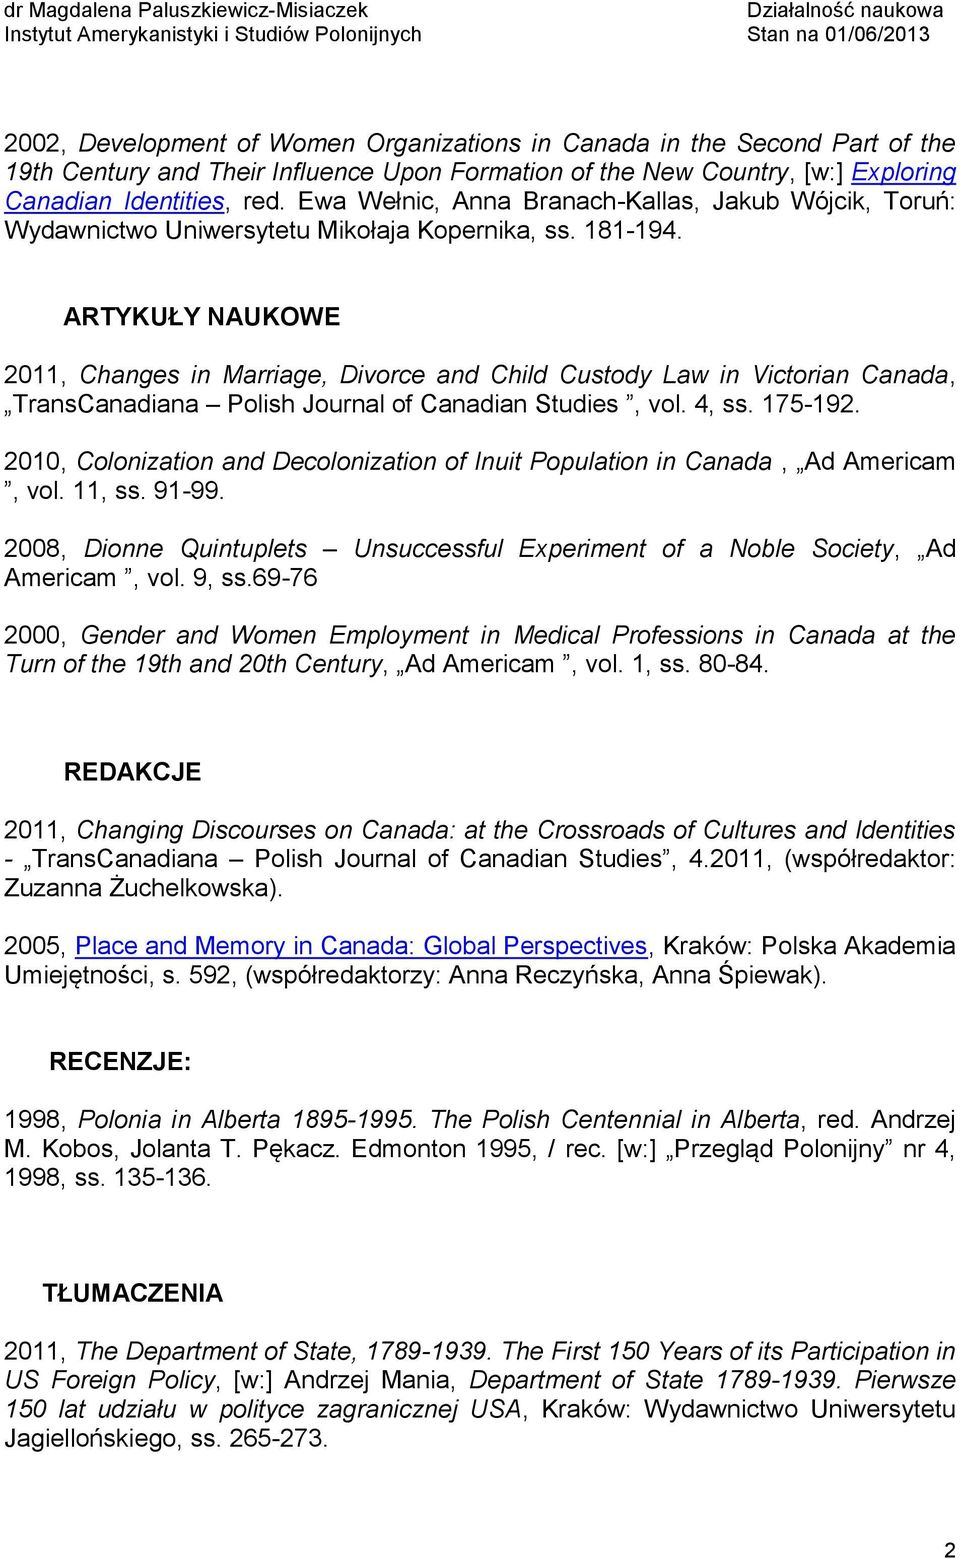 ARTYKUŁY NAUKOWE 2011, Changes in Marriage, Divorce and Child Custody Law in Victorian Canada, TransCanadiana Polish Journal of Canadian Studies, vol. 4, ss. 175-192.